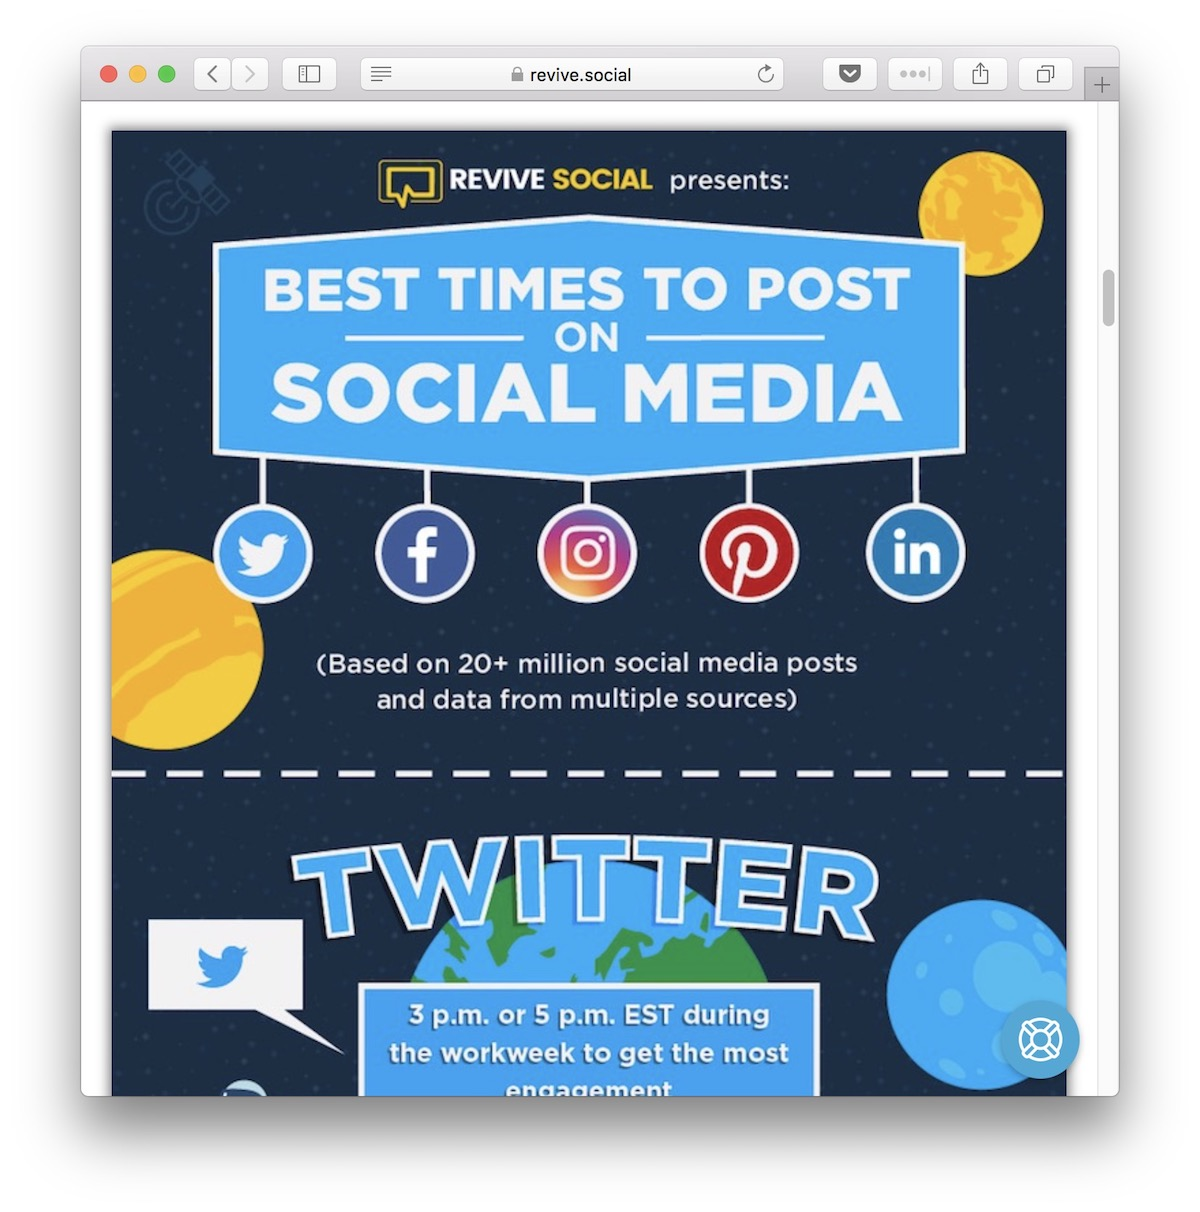 Example of how to adapt blog content to social media: infographic on the best times to post on social